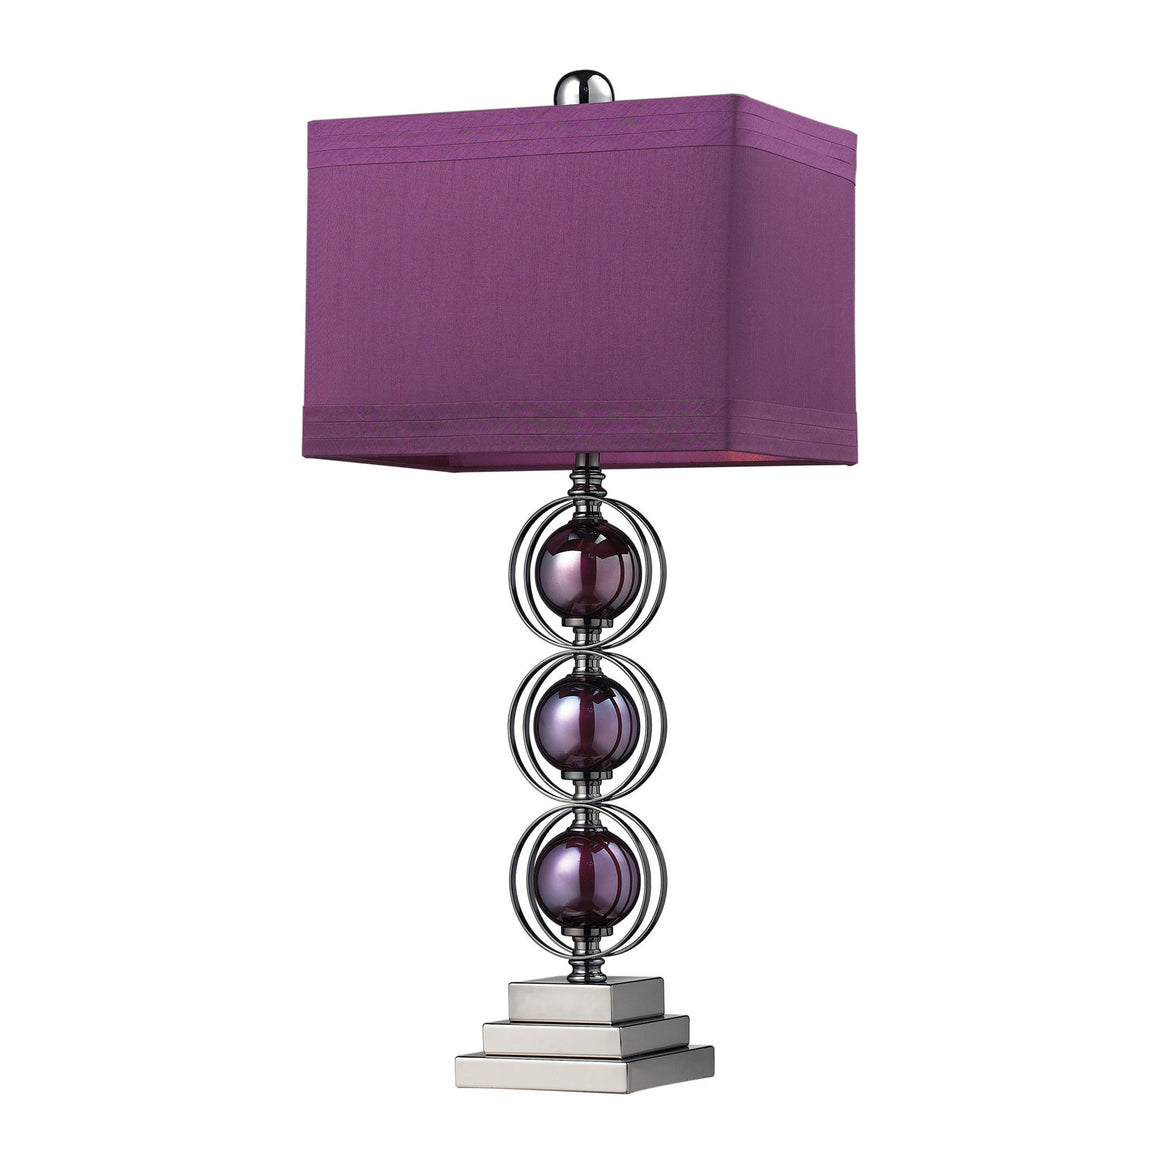 Alva Contemporary Table Lamp In Black Nickel And Purple D2232